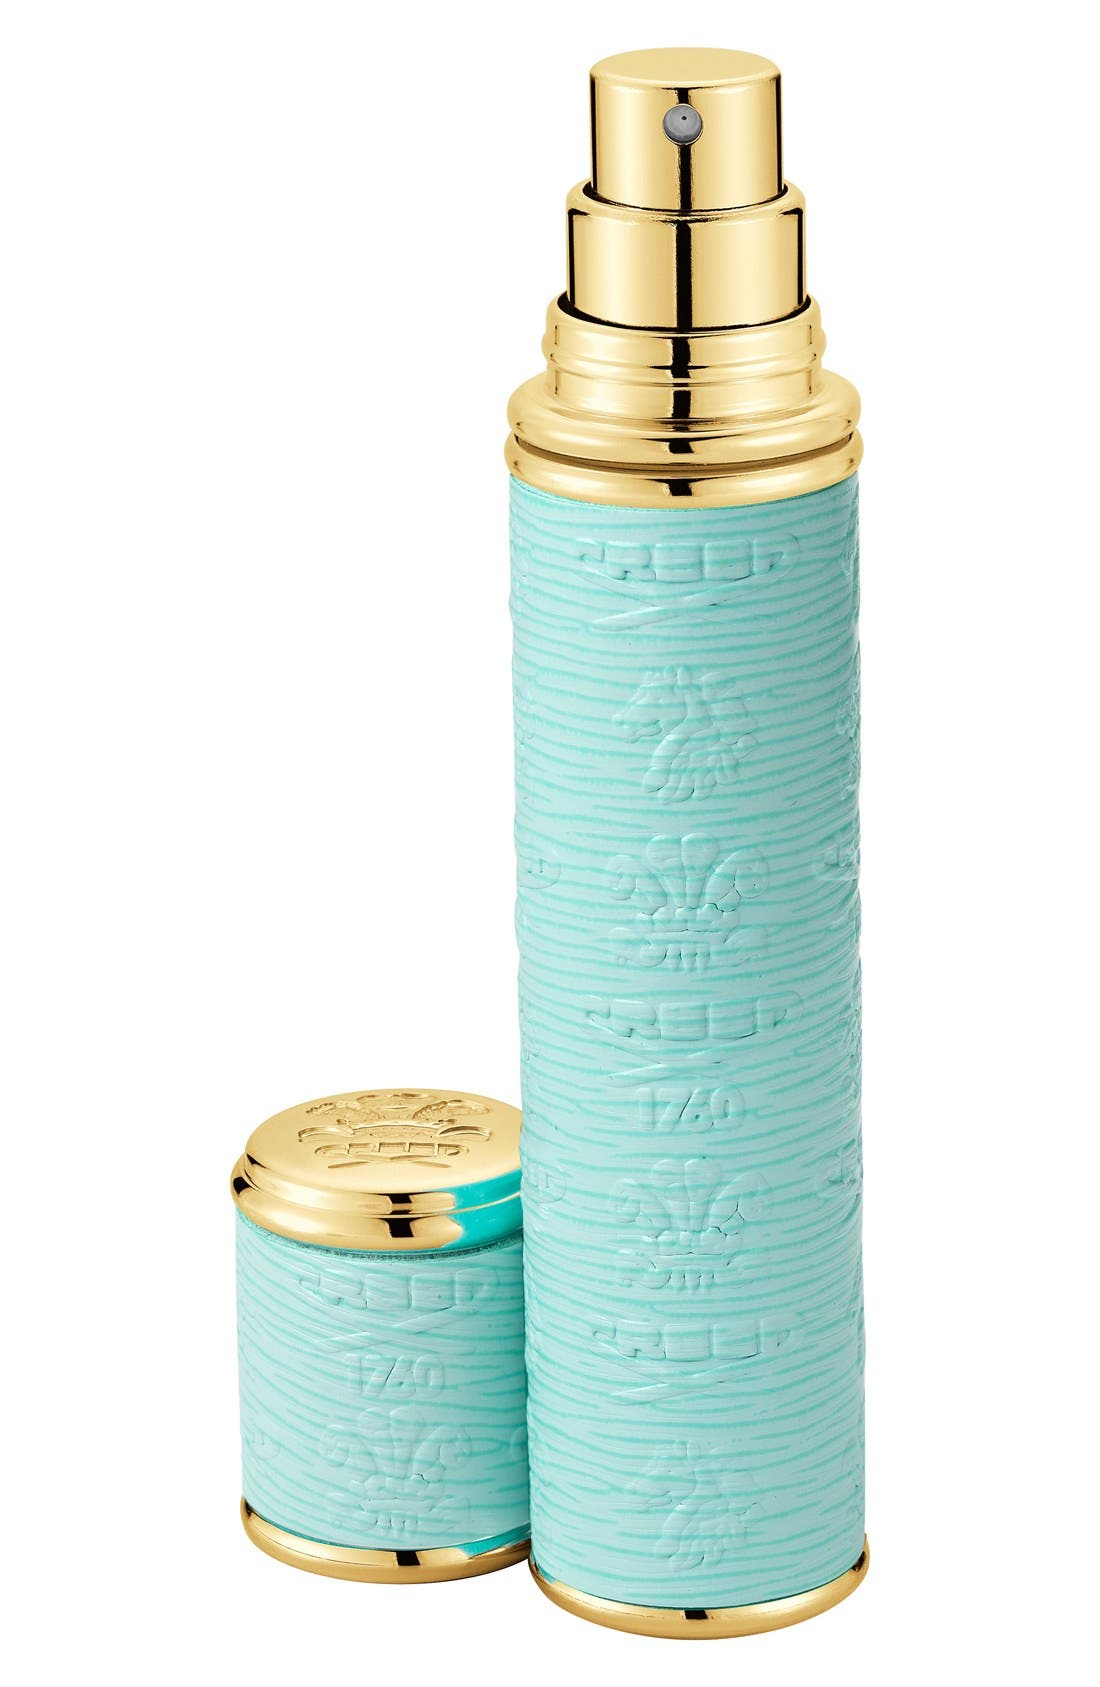 Silver Leather with Gold Trim Pocket Atomizer,                             Main thumbnail 1, color,                             TURQUOISE/GOLD